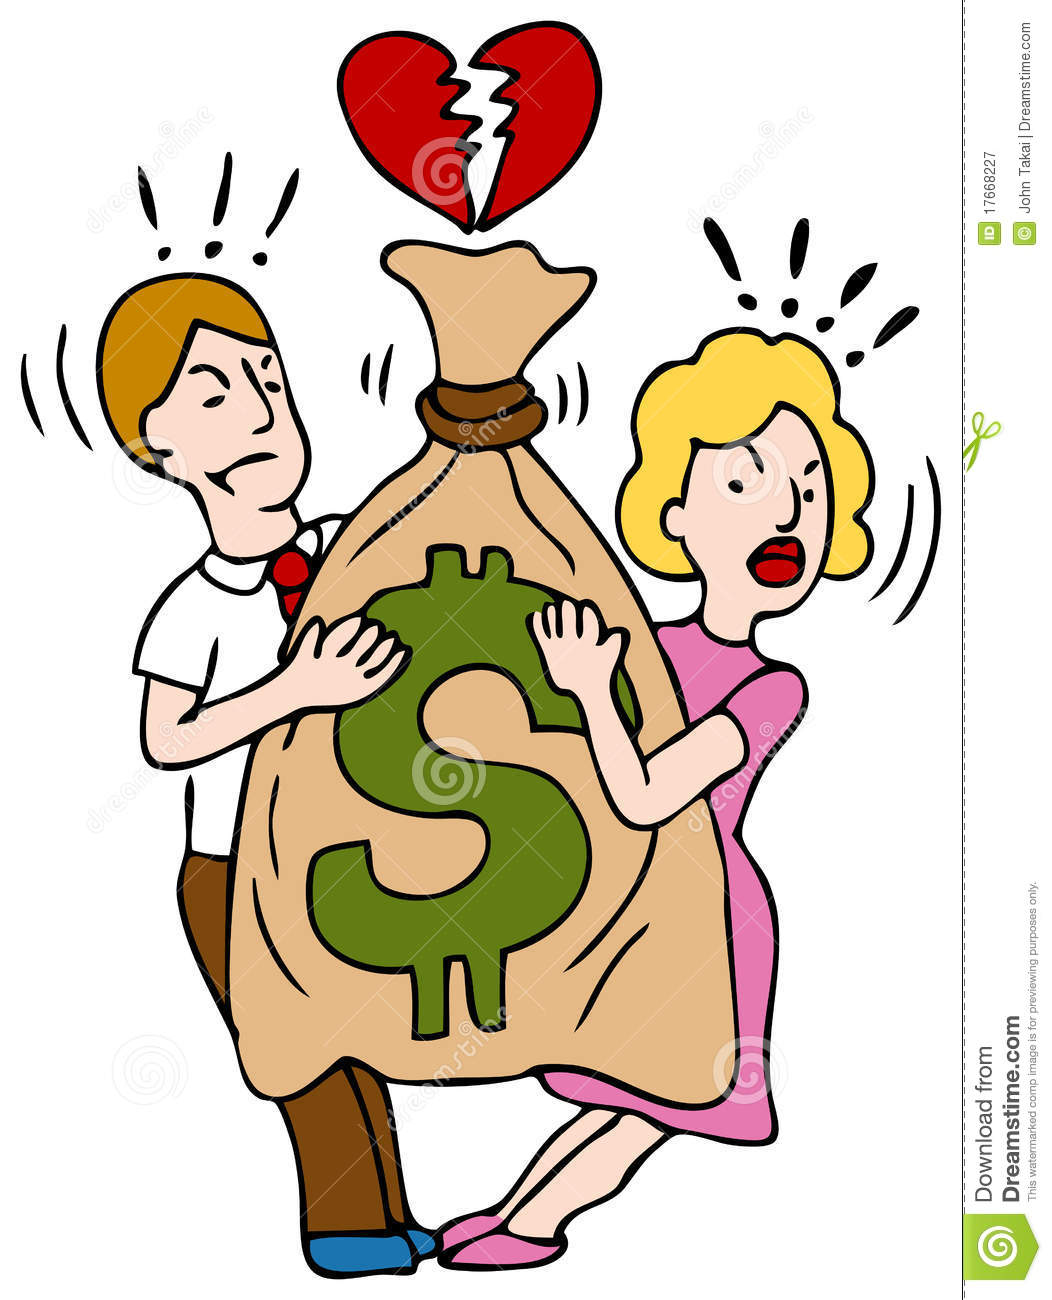 An Image Of A Couple Fighting Over A Bag Of Money